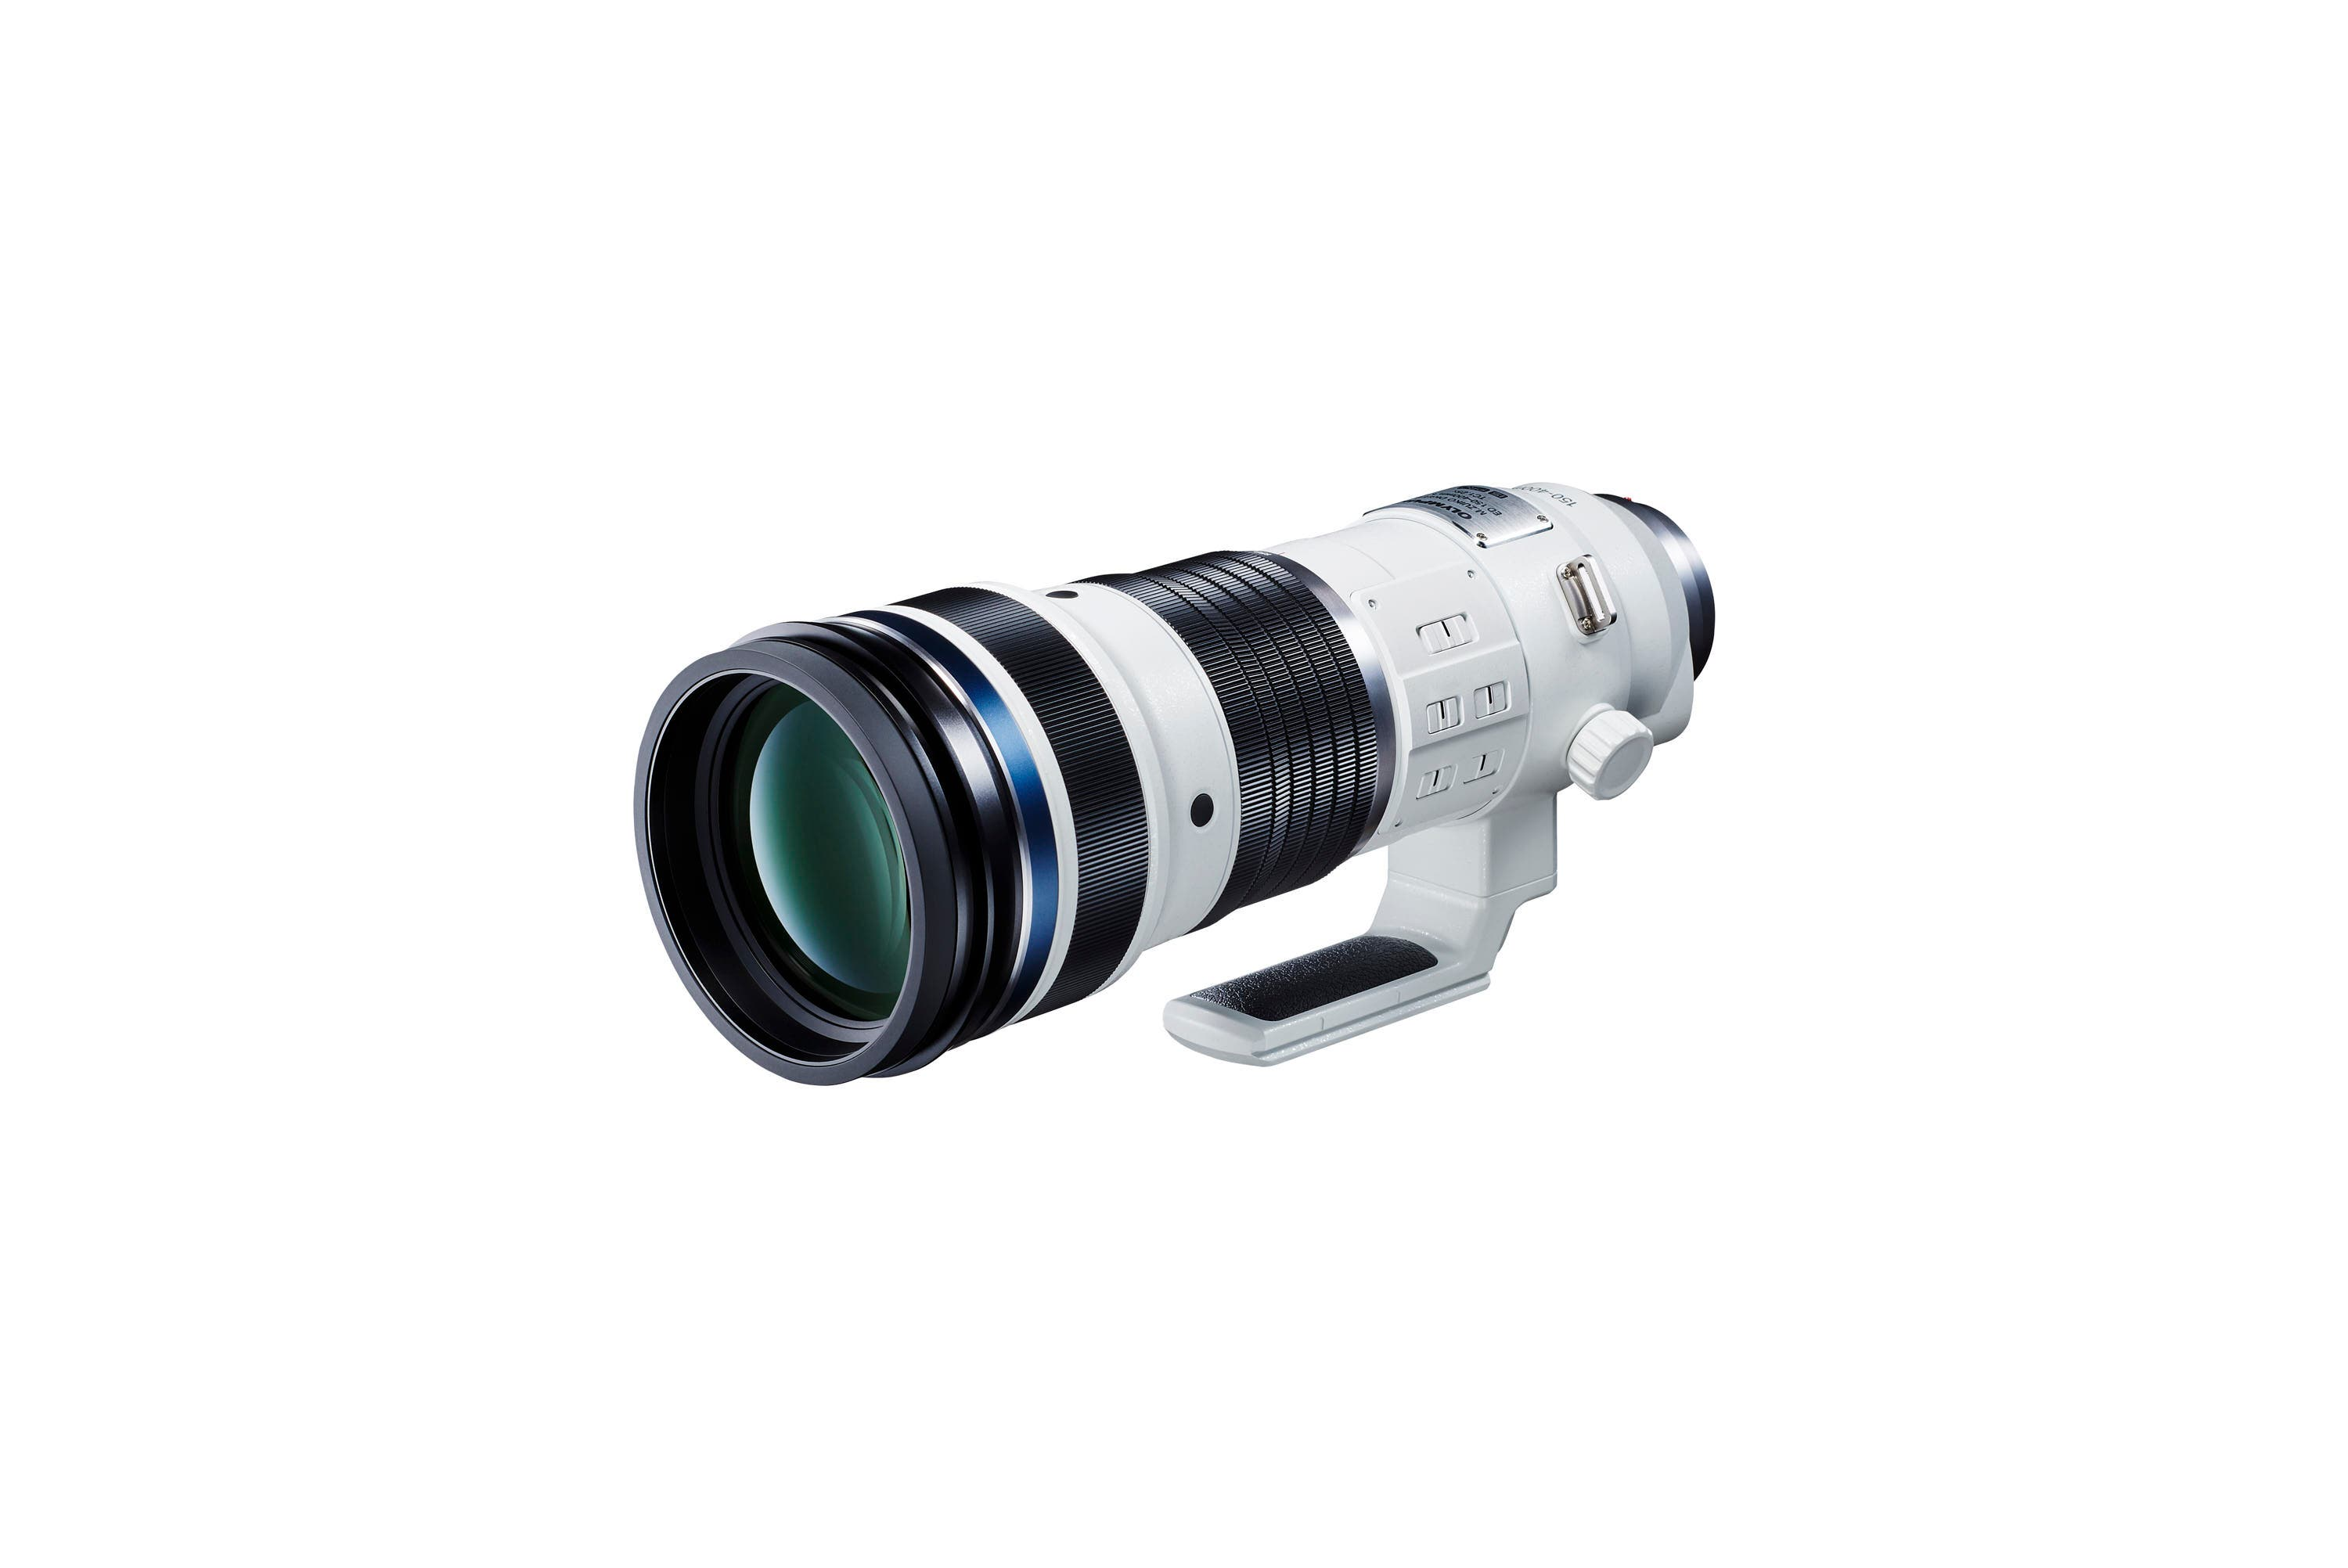 The Olympus M.Zuiko Digital ED 150-400mm F4.5 TC1.25x IS PRO is the Lens the System Needs